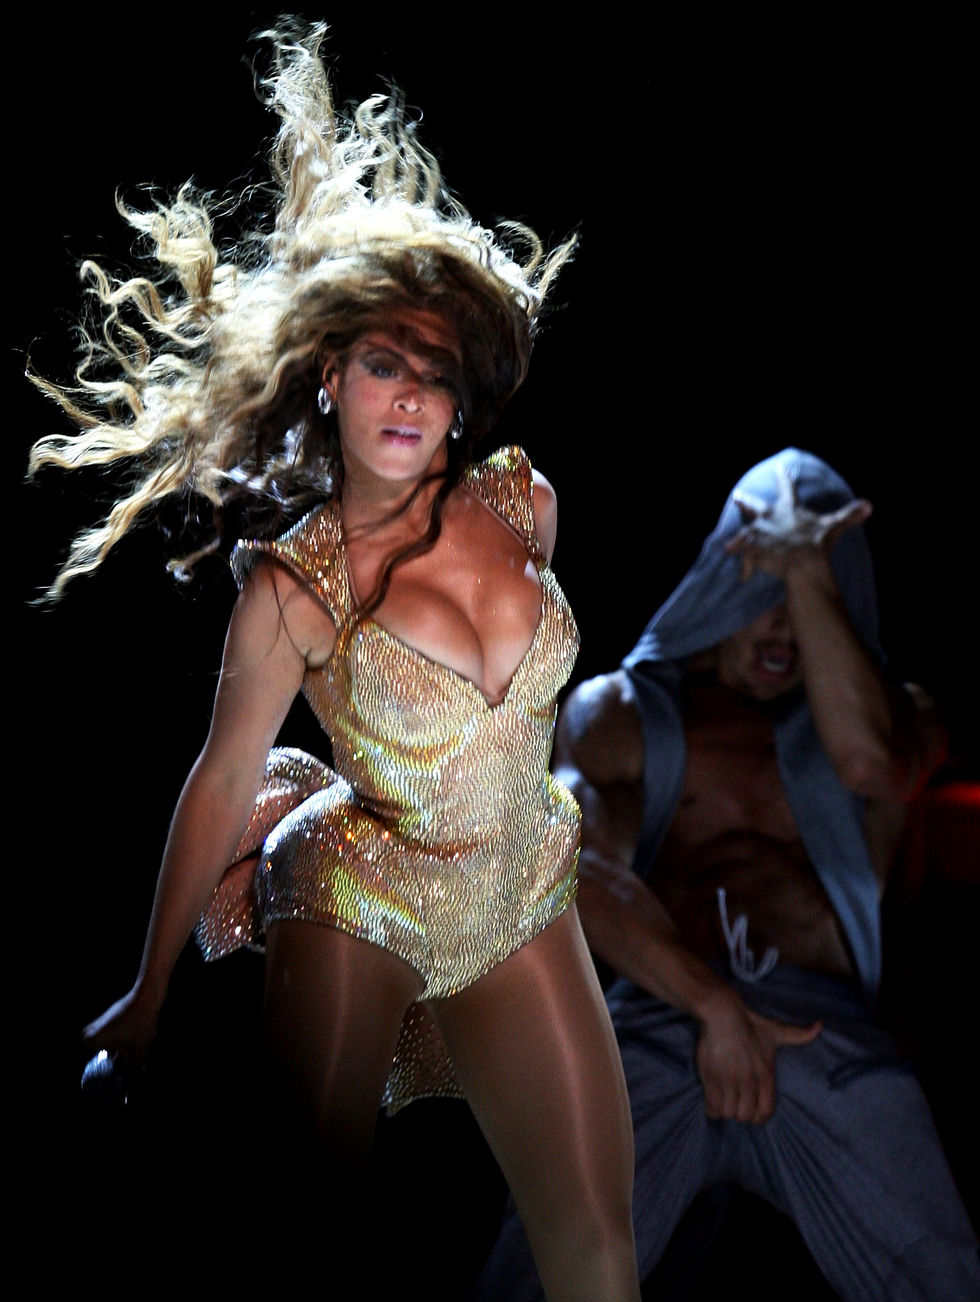 beyonce-performs-at-the-essence-music-festival-01